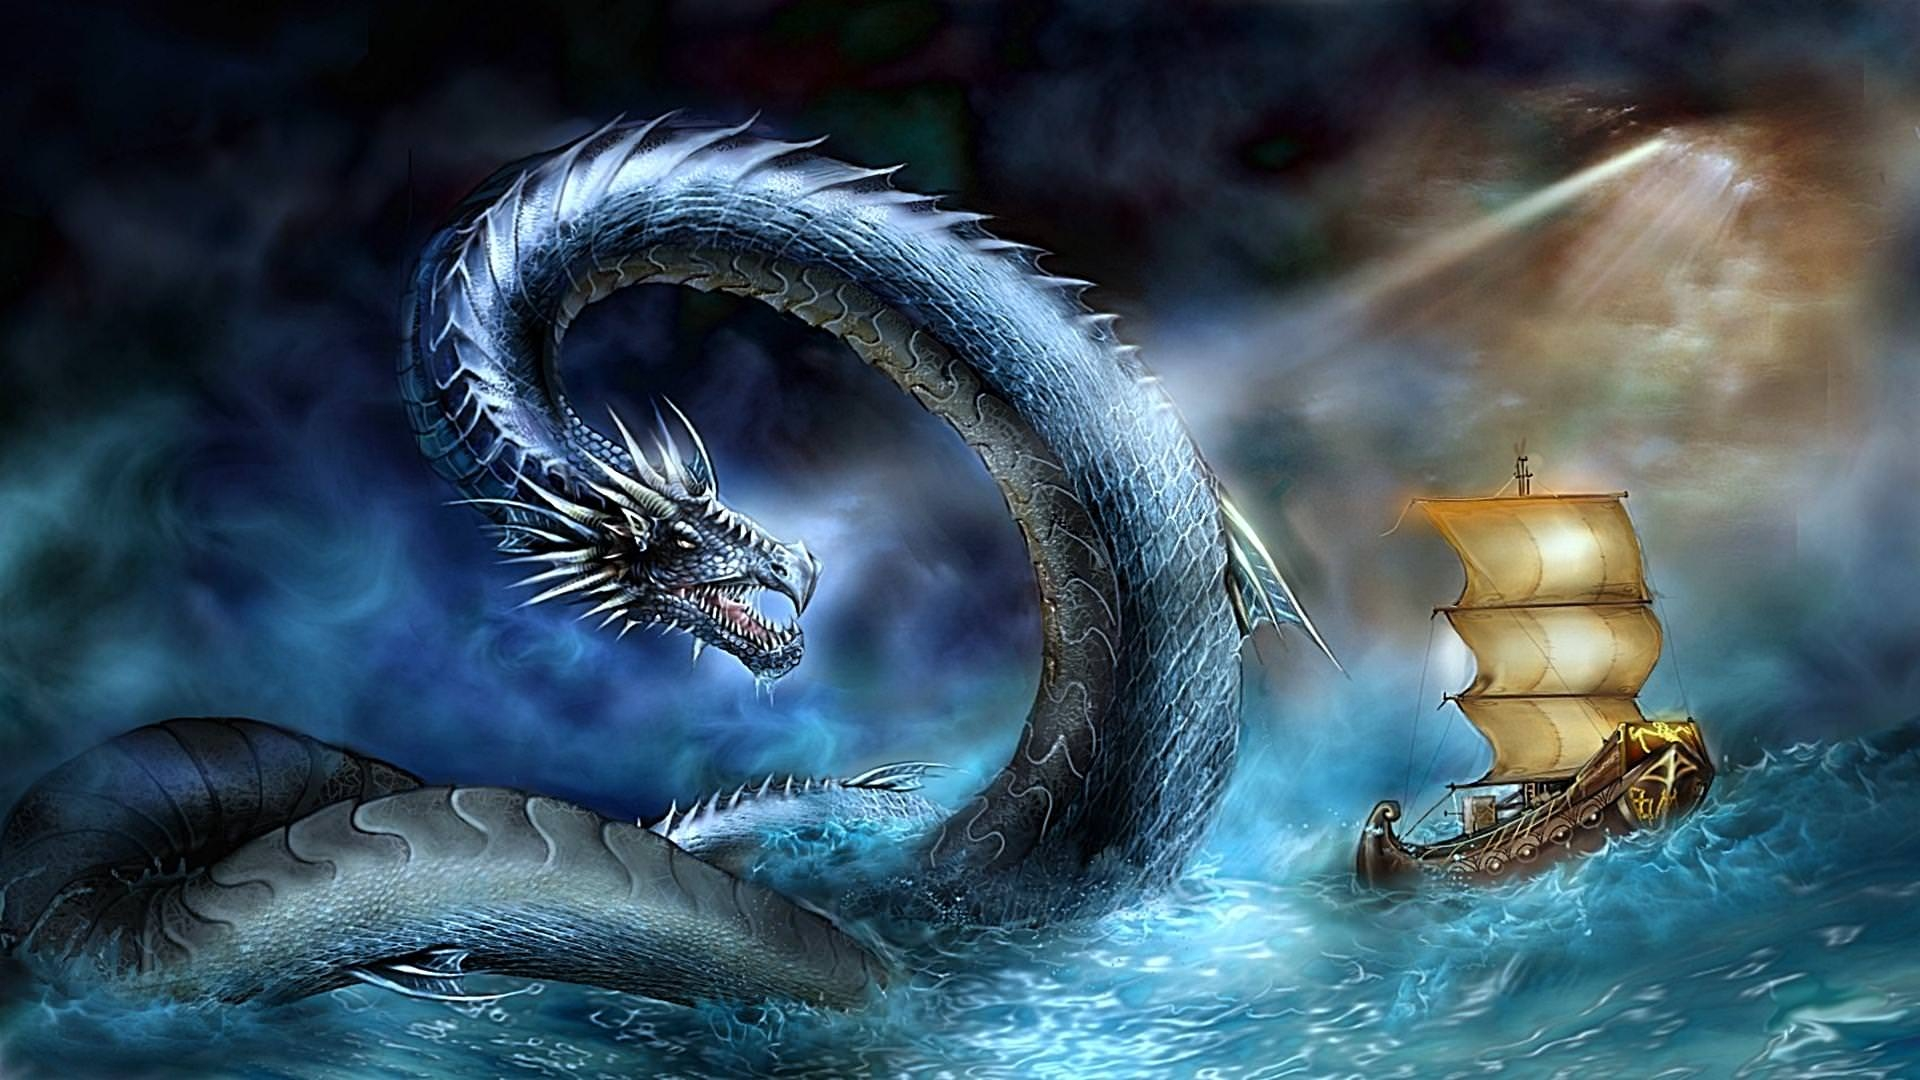 dragons wallpaper free images